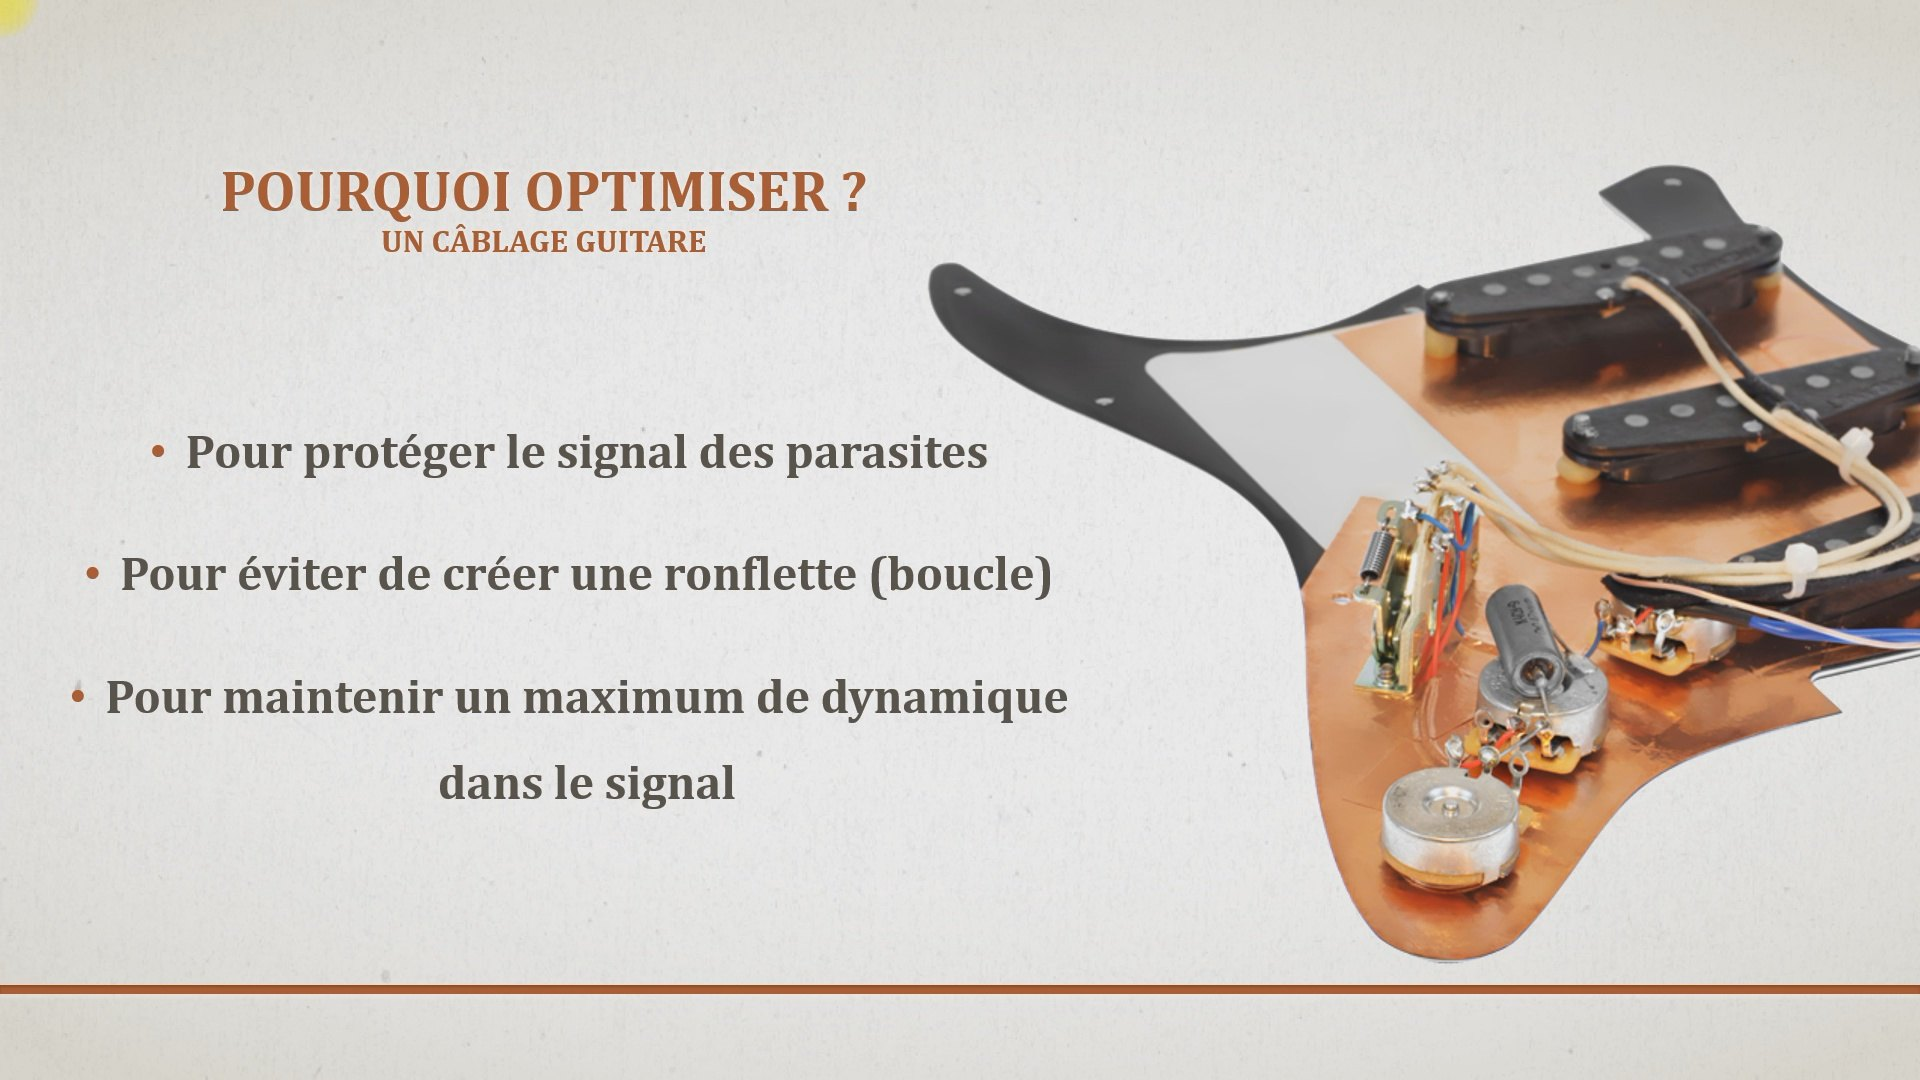 formation optimisation cablage guitare - pourquoi optimiser